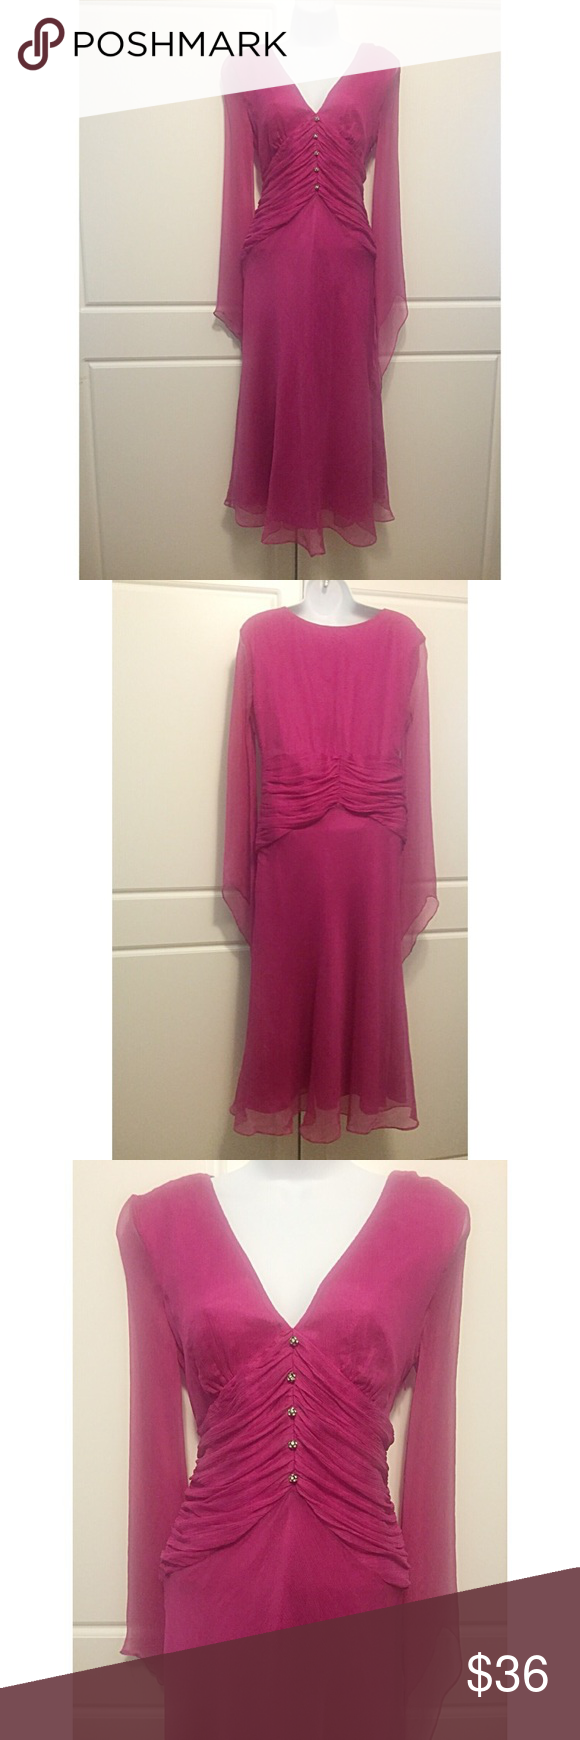 """Laundry Fuchsia Silk Chiffon Dress Lovely 100% silk chiffon dress in a stunning fuchsia. The dress is lined in polyester except the bell sleeves, which are semi-sheer. Ruched fabric draped below bust line. Rhinestone buttons down center. Hidden side zipper closure. Measures: bust 19"""", waist 15"""", hips 17"""", sleeves 32"""", across shoulders 16"""", length 46"""". New with tags and extra button. Laundry by Shelli Segal Dresses Midi"""